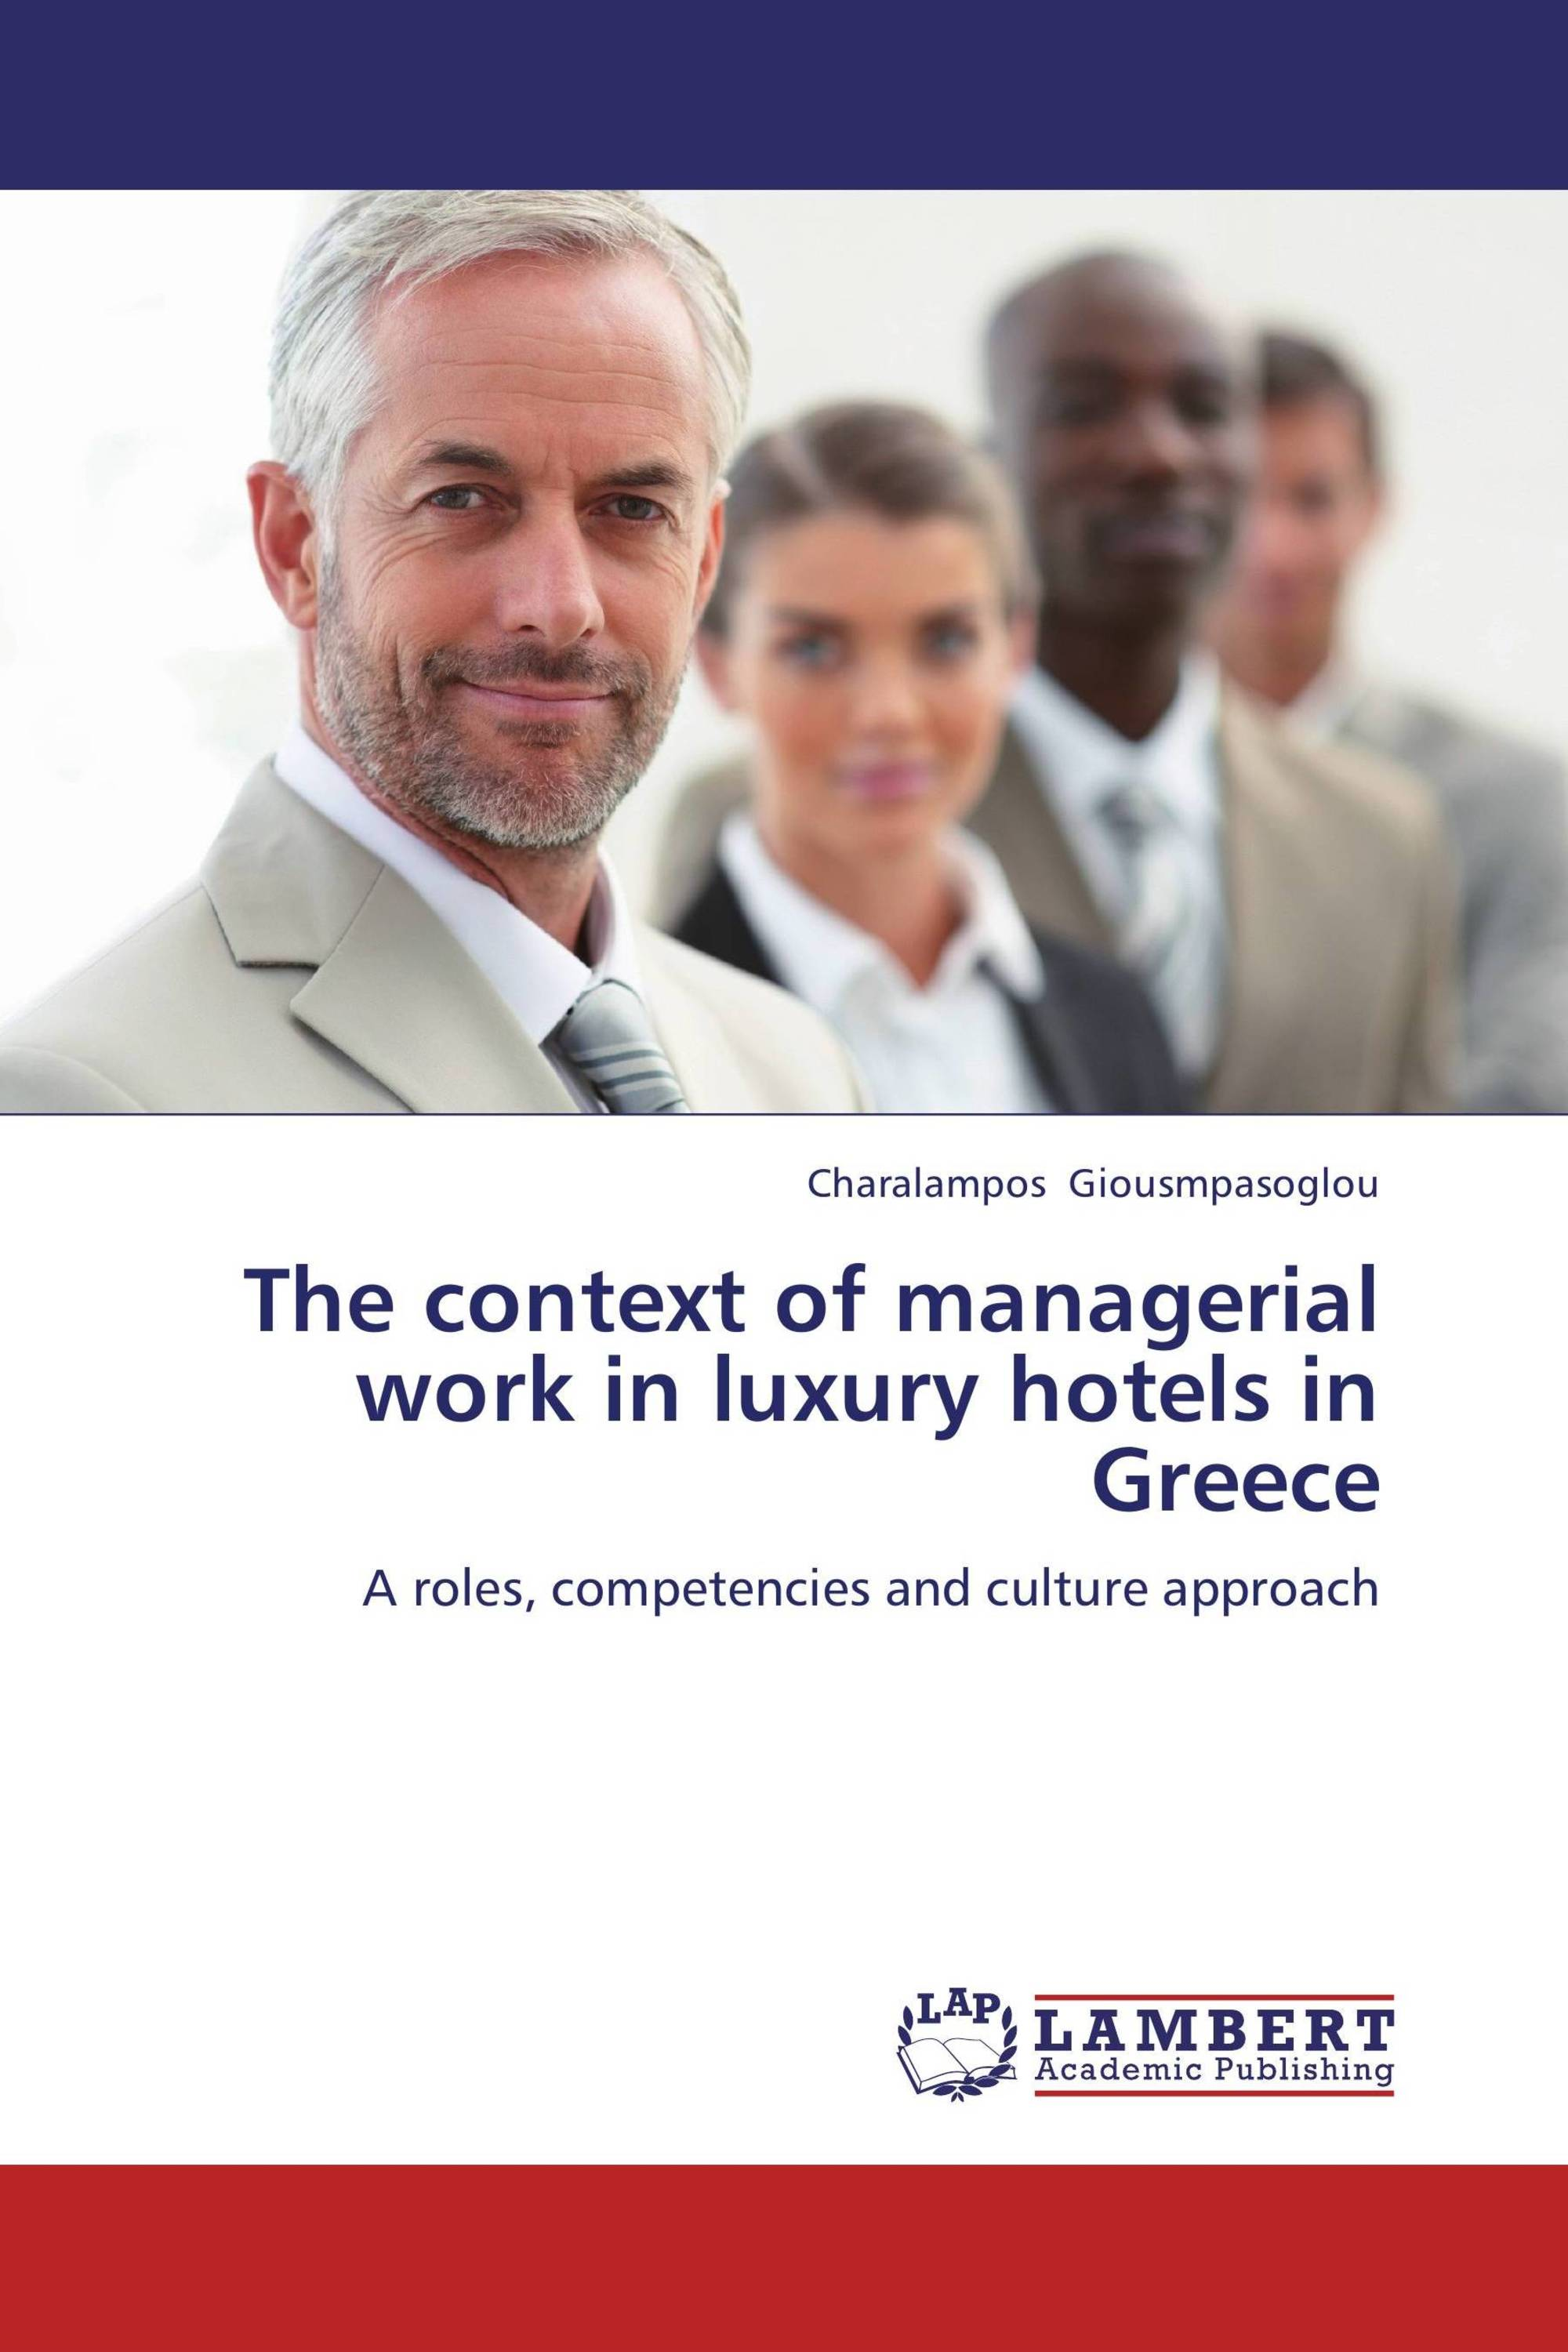 The context of managerial work in luxury hotels in Greece